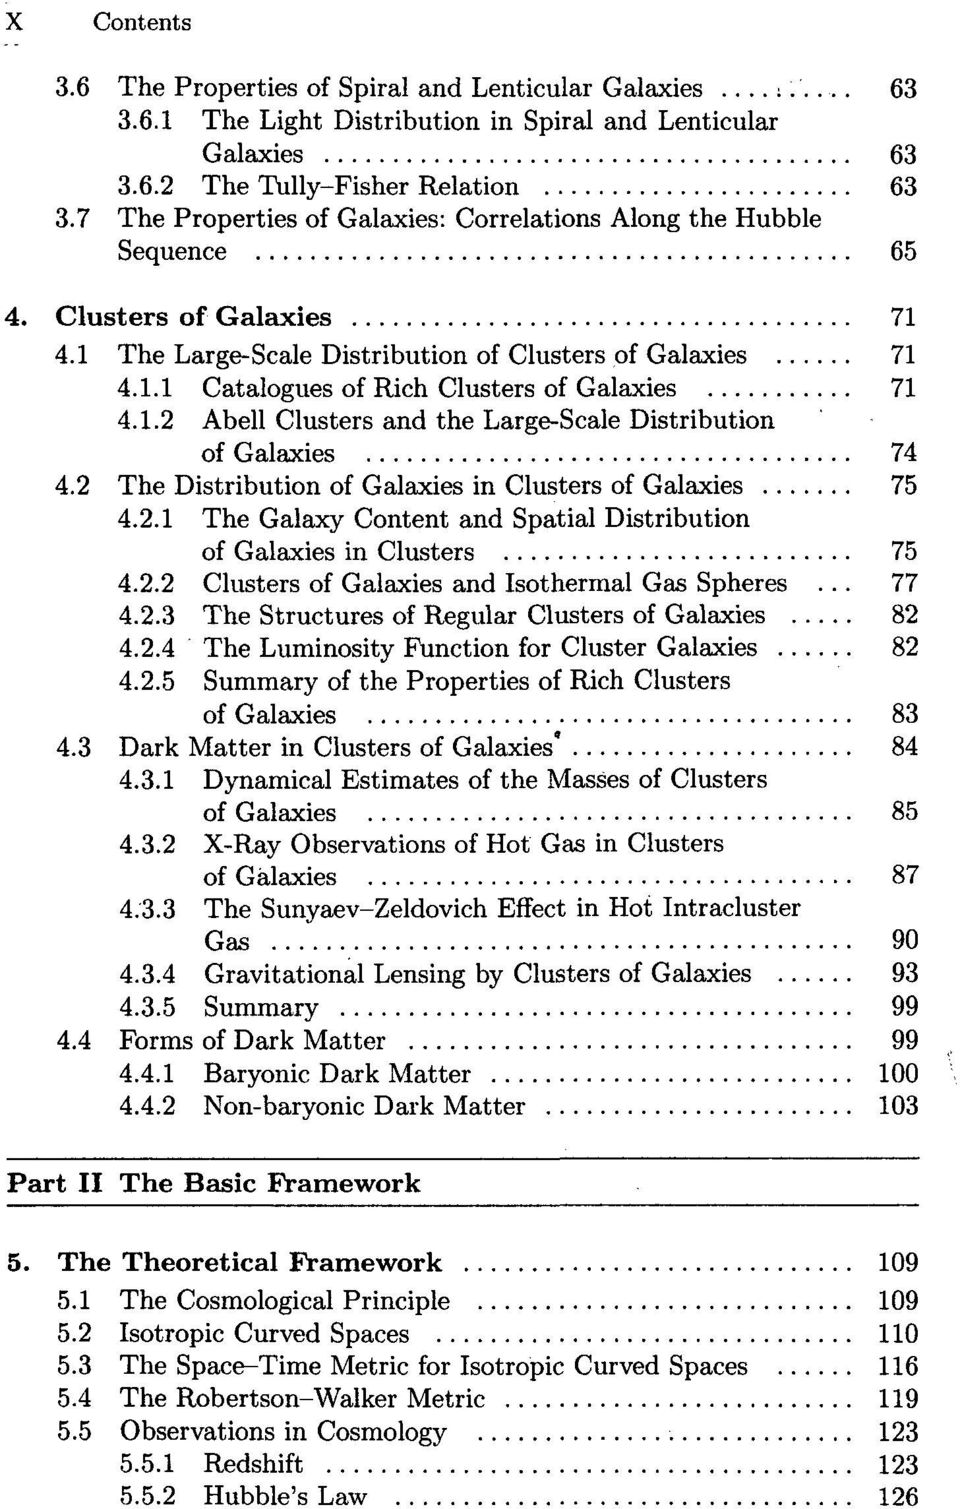 1.2 Abell Clusters and the Large-Scale Distribution of Galaxies 74 4.2 The Distribution of Galaxies in Clusters of Galaxies 75 4.2.1 The Galaxy Content and Spatial Distribution of Galaxies in Clusters 75 4.